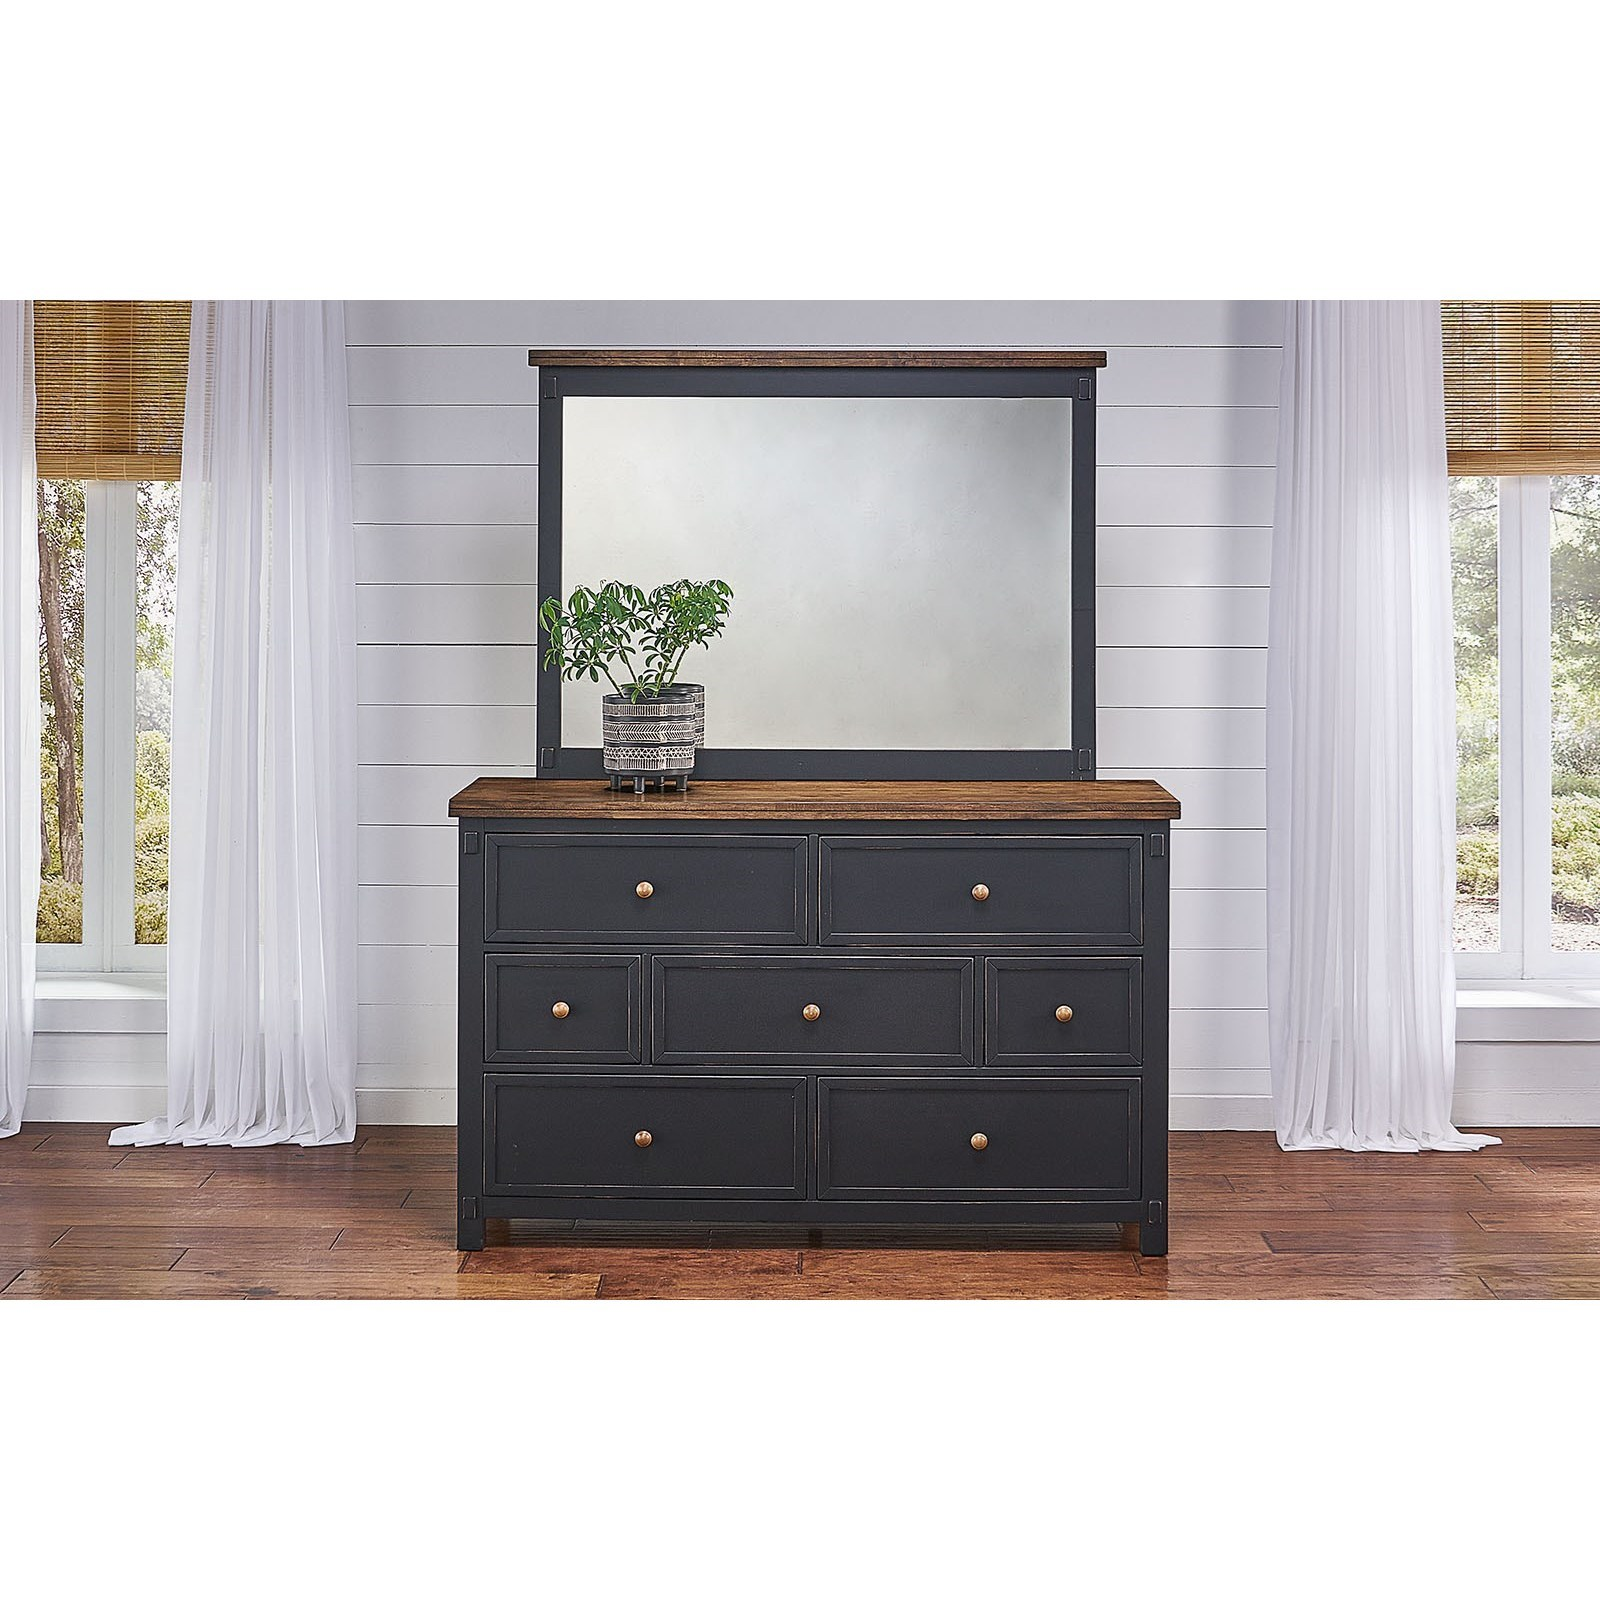 Stormy Ridge Dresser and Mirror Set by AAmerica at Novello Home Furnishings